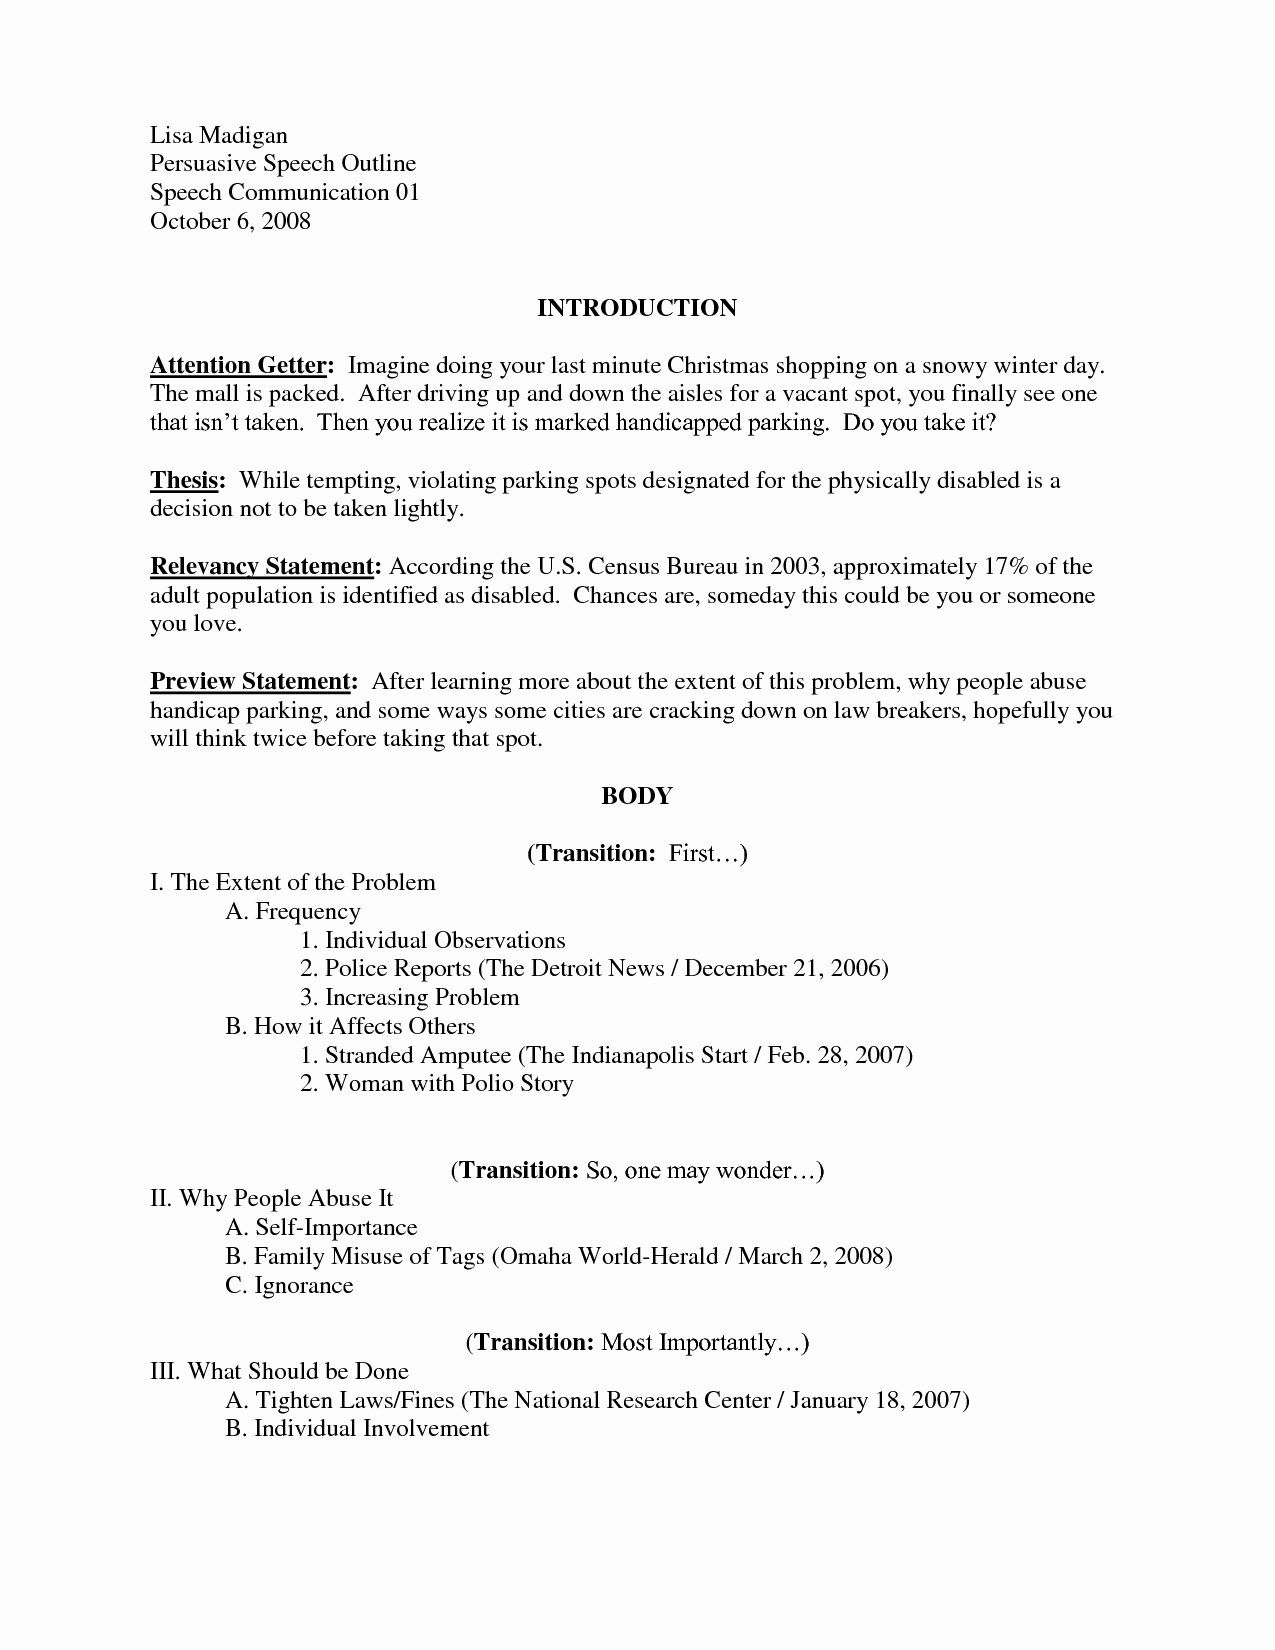 Texting and Driving Research Paper Luxury Texting while Driving Essay Ideas for Middle School